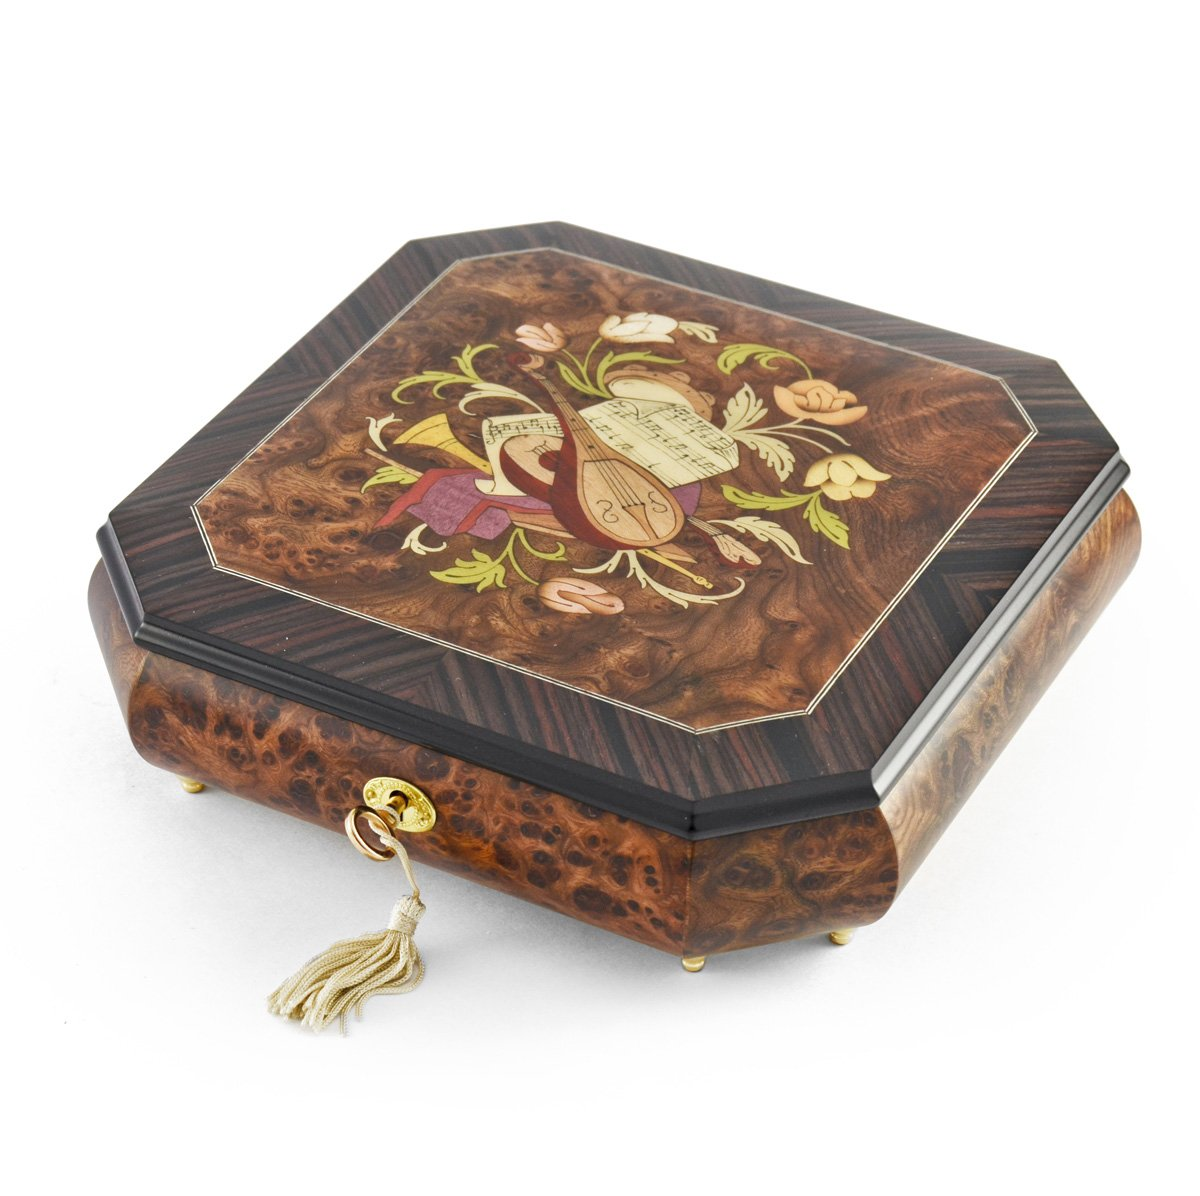 Perfectly Hand Crafted Floral Music Jewelry Box HUGE SALE - Love Story (Love Story the Movie)